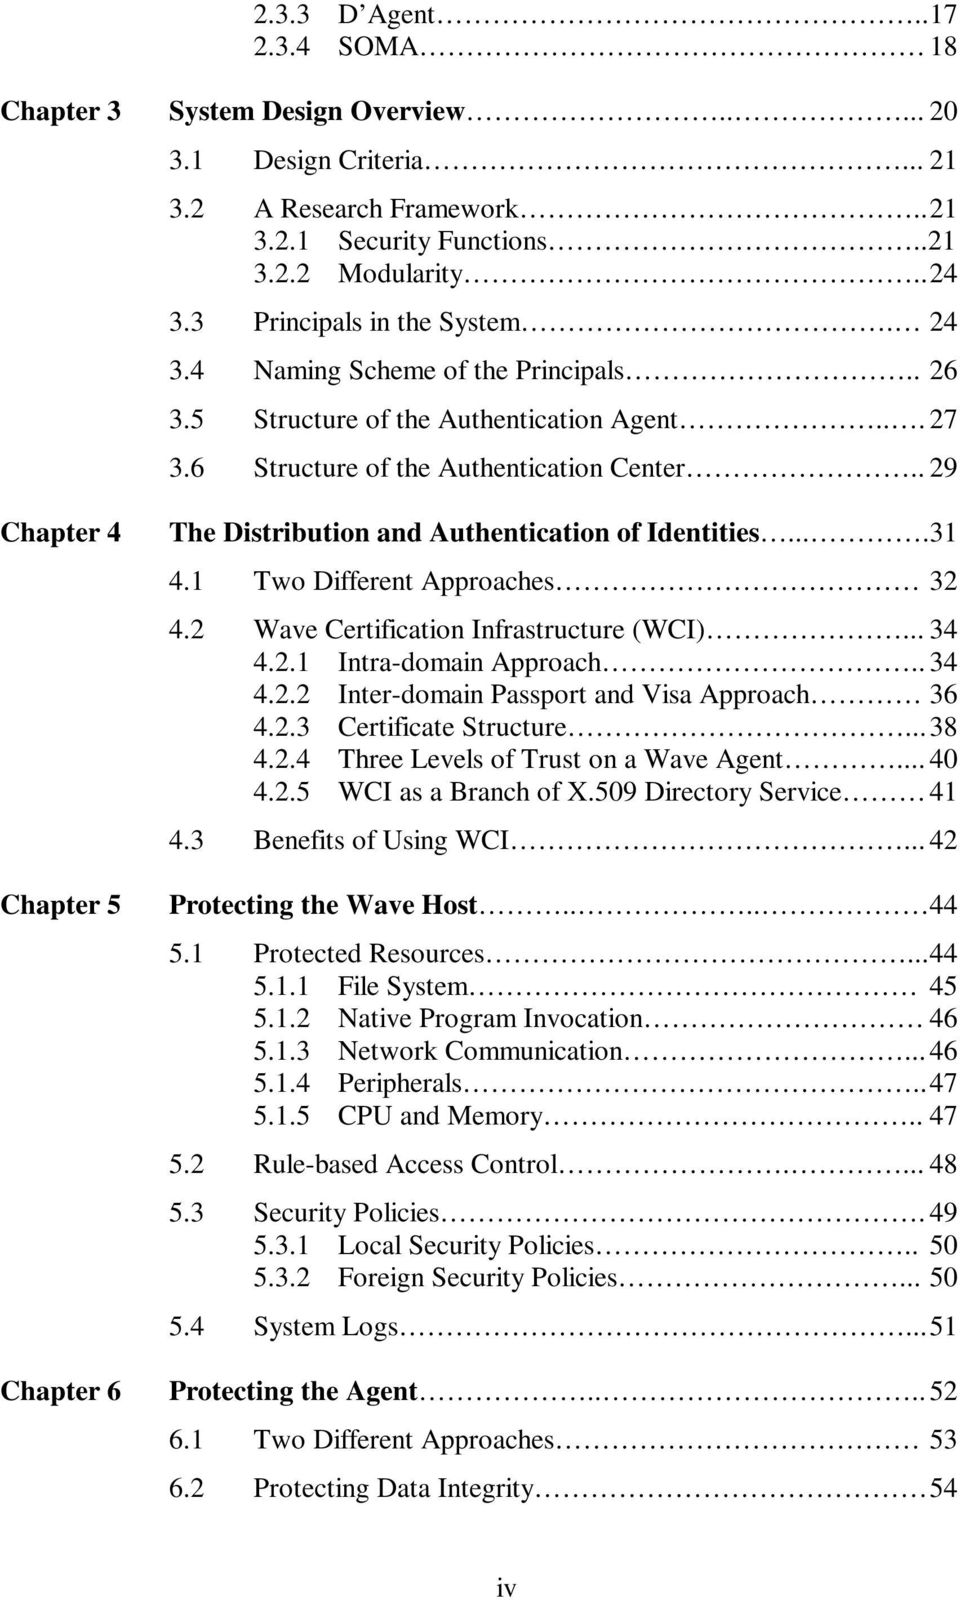 . 29 Chapter 4 Chapter 5 The Distribution and Authentication of Identities....31 4.1 Two Different Approaches 32 4.2 Wave Certification Infrastructure (WCI)... 34 4.2.1 Intra-domain Approach.. 34 4.2.2 Inter-domain Passport and Visa Approach 36 4.